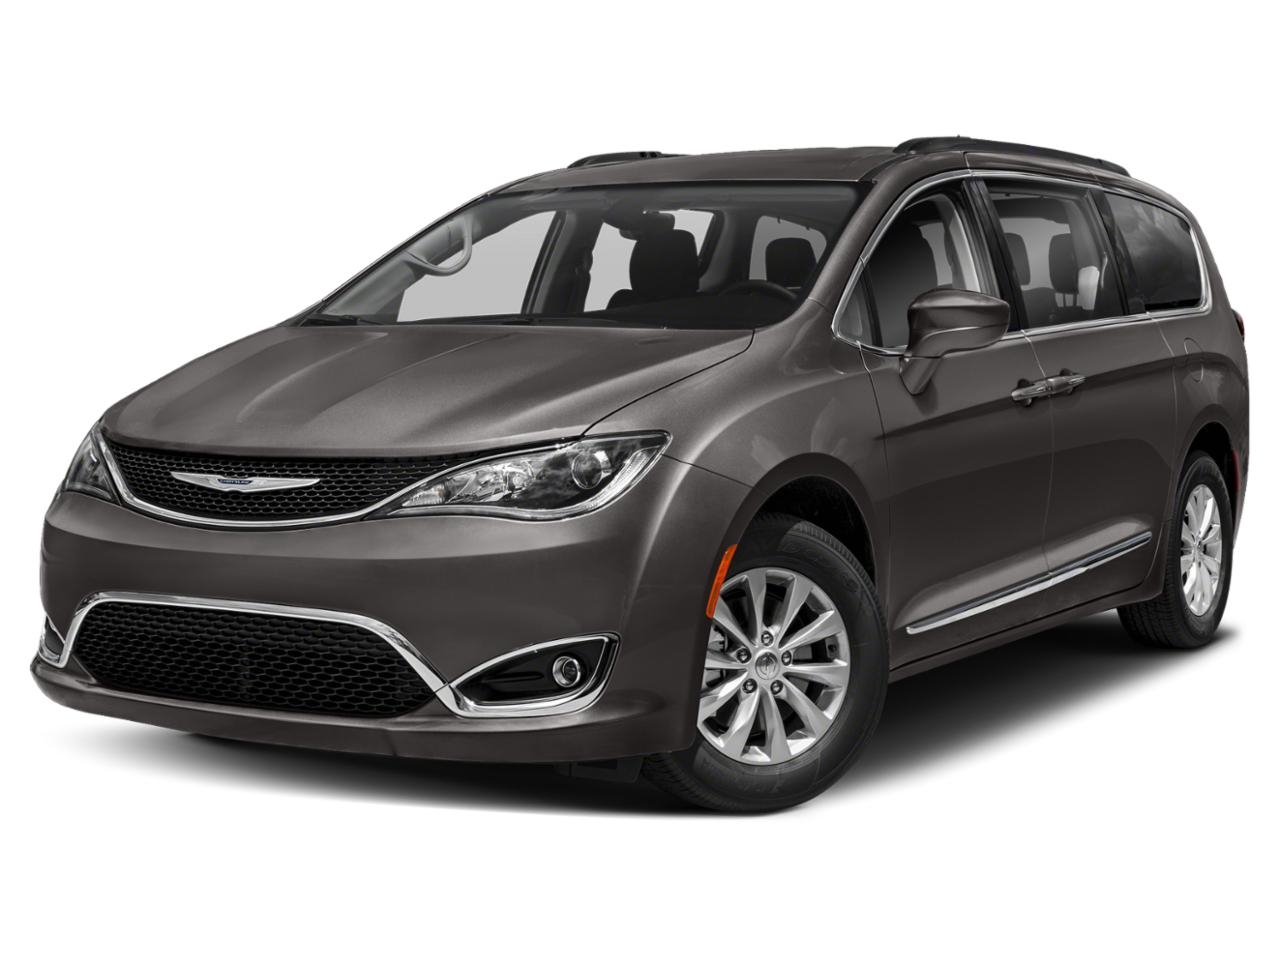 2020 Chrysler Pacifica Vehicle Photo in Portland, OR 97225